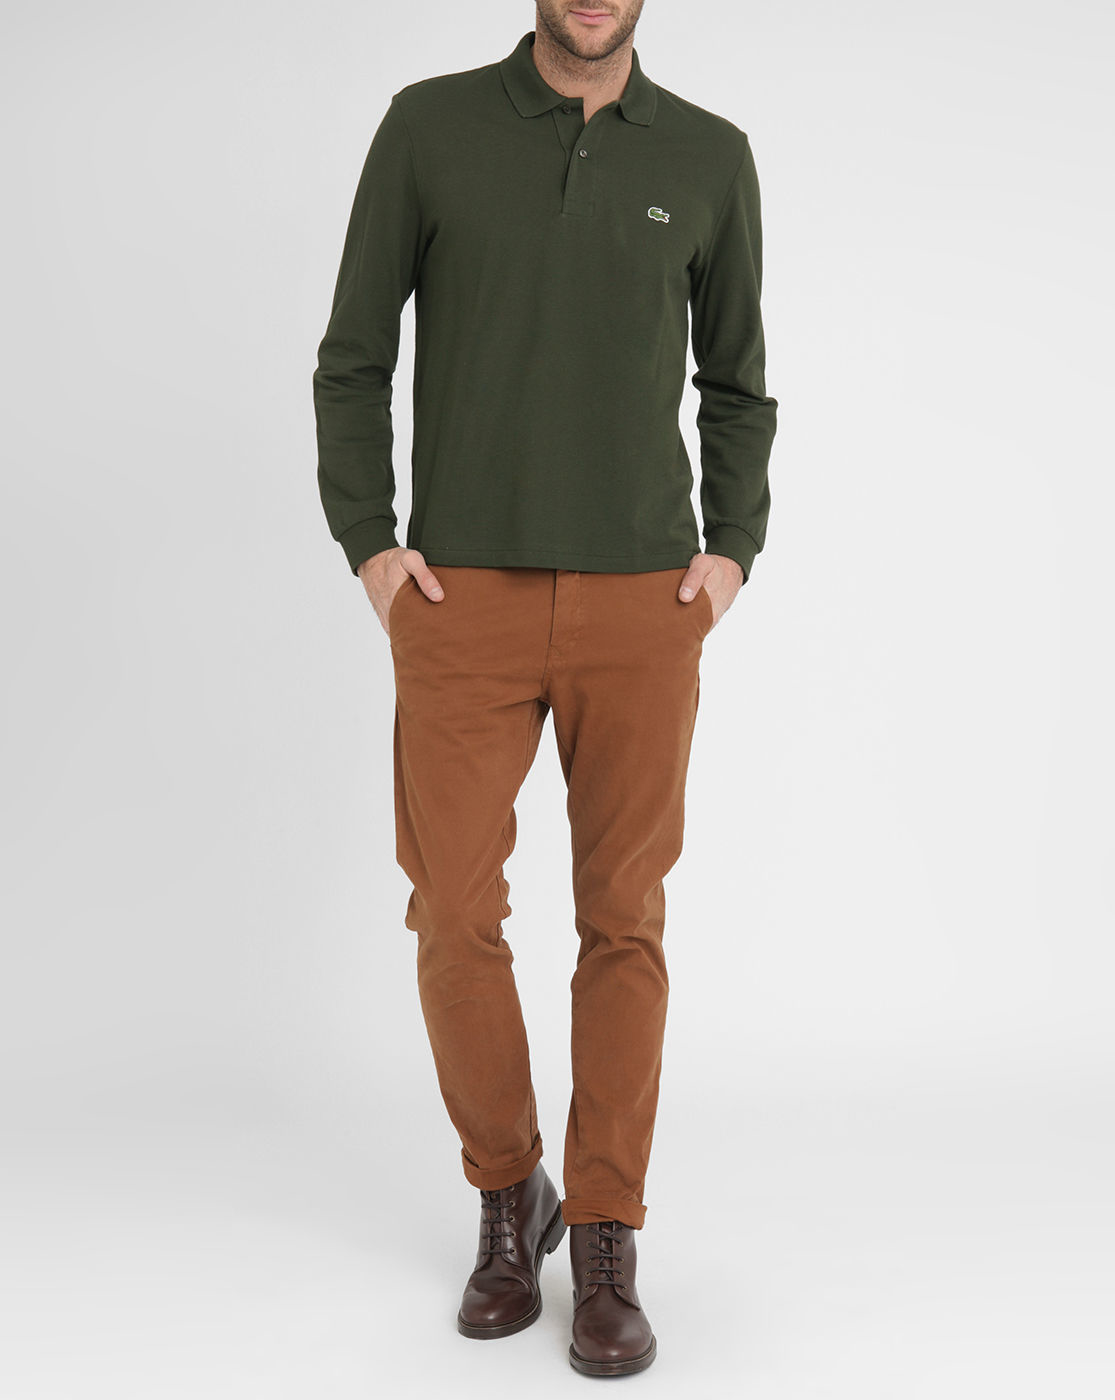 Lacoste khaki long sleeve polo shirt in green for men Man in polo shirt